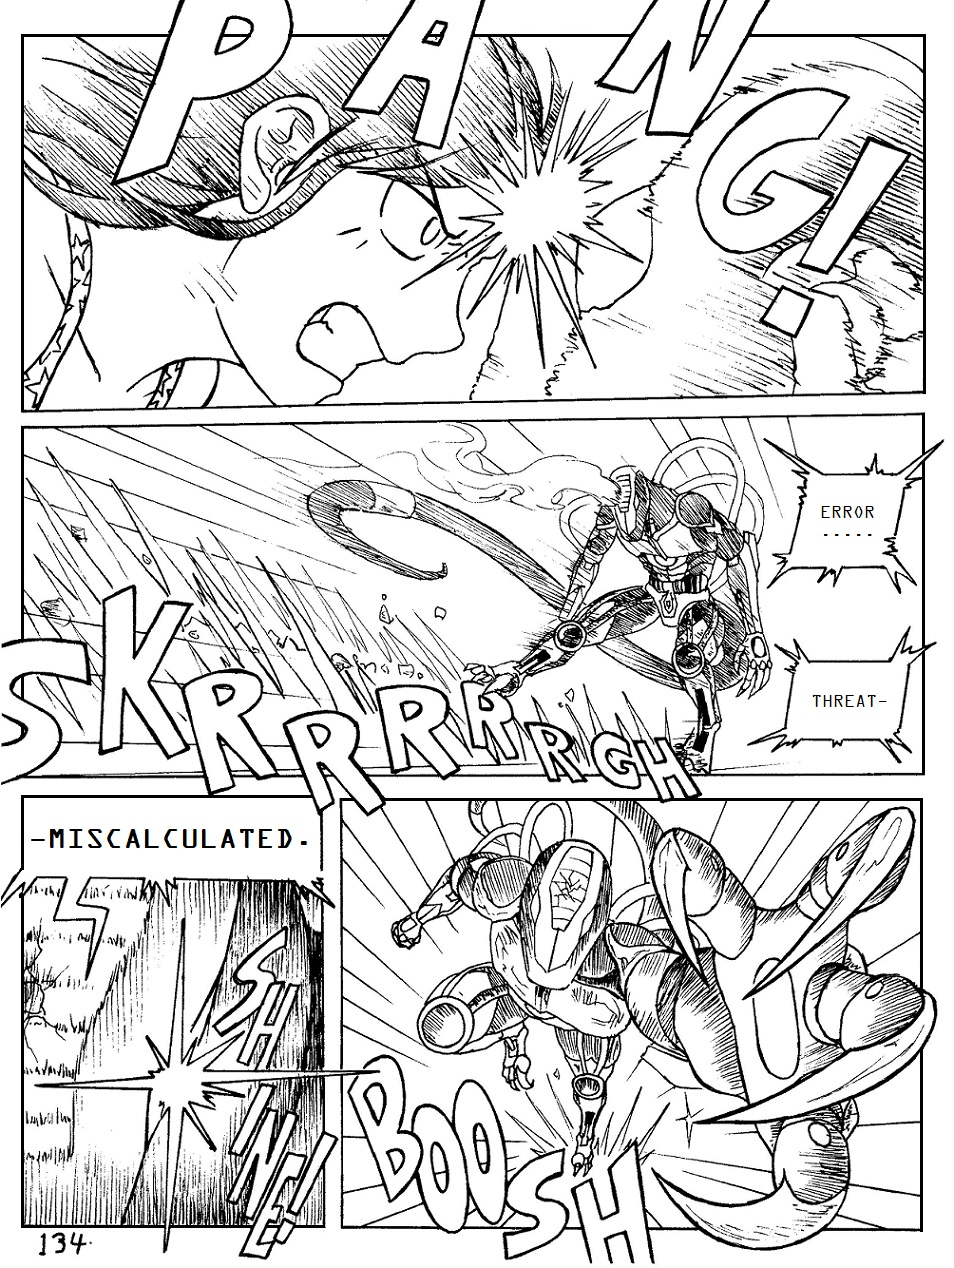 Section 22 page 134